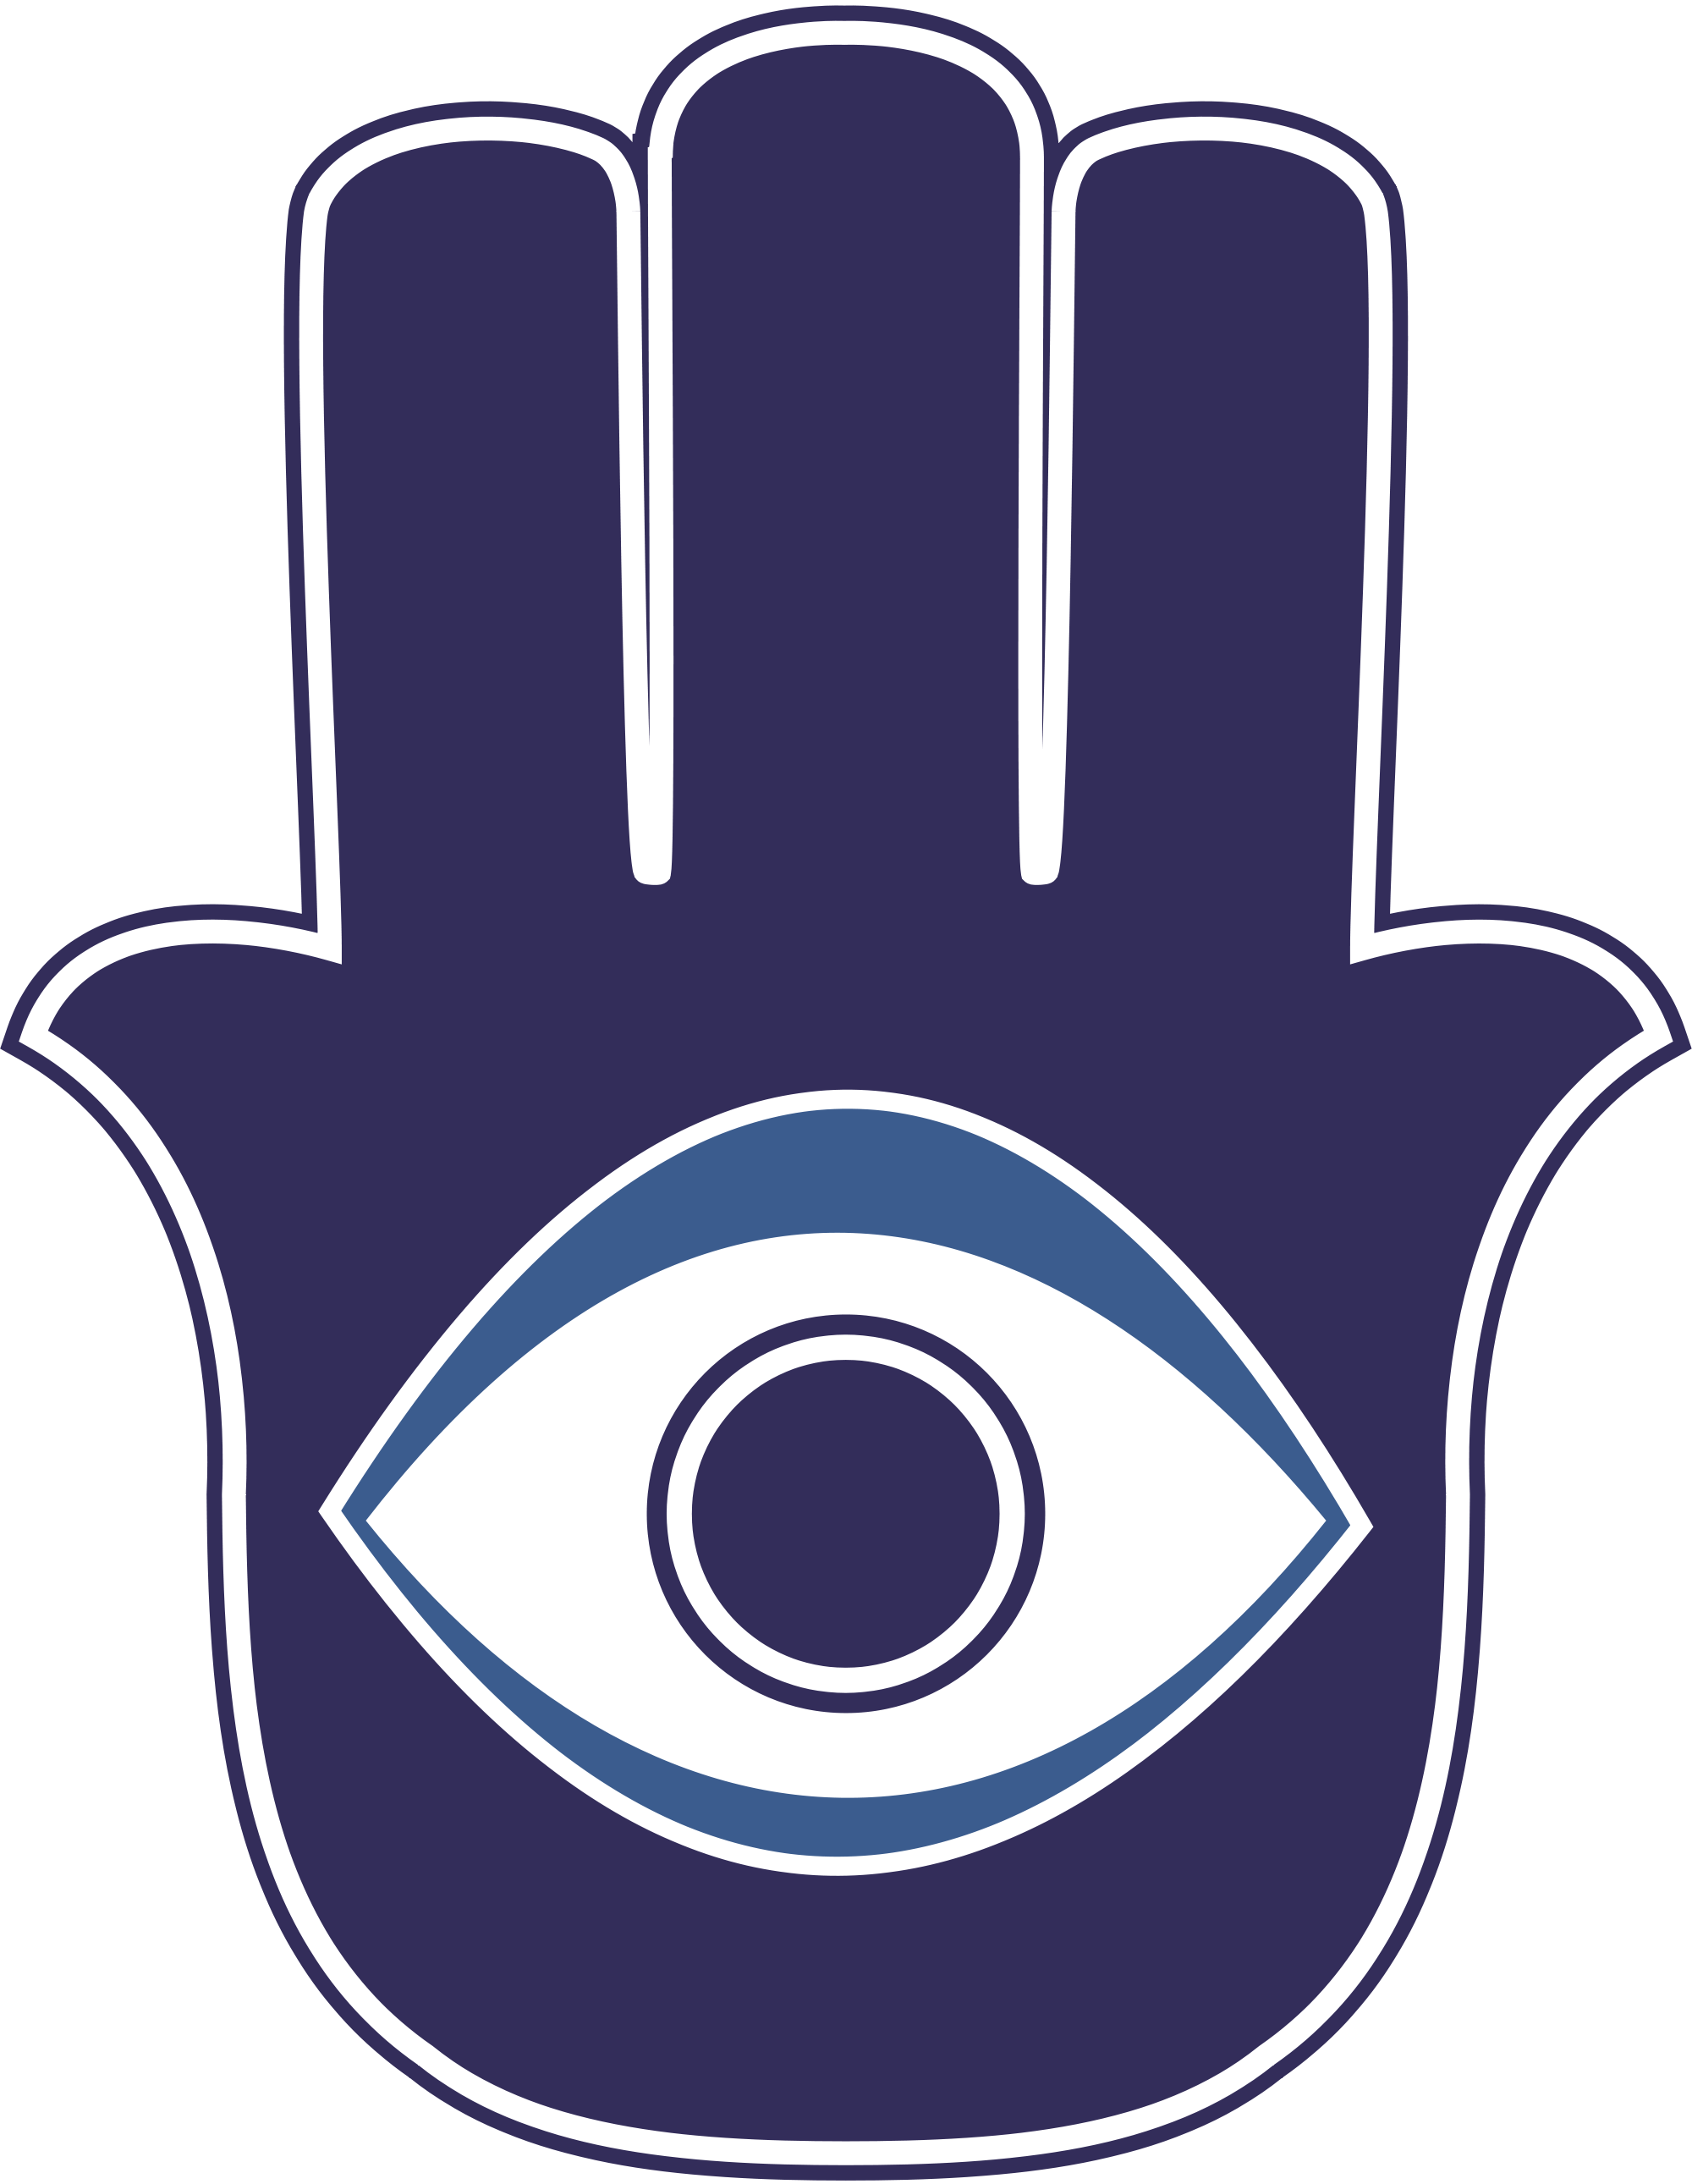 The evil is an ancient symbolthis image is said to banish evil the evil is an ancient symbolthis image is said to banish evil and envy biocorpaavc